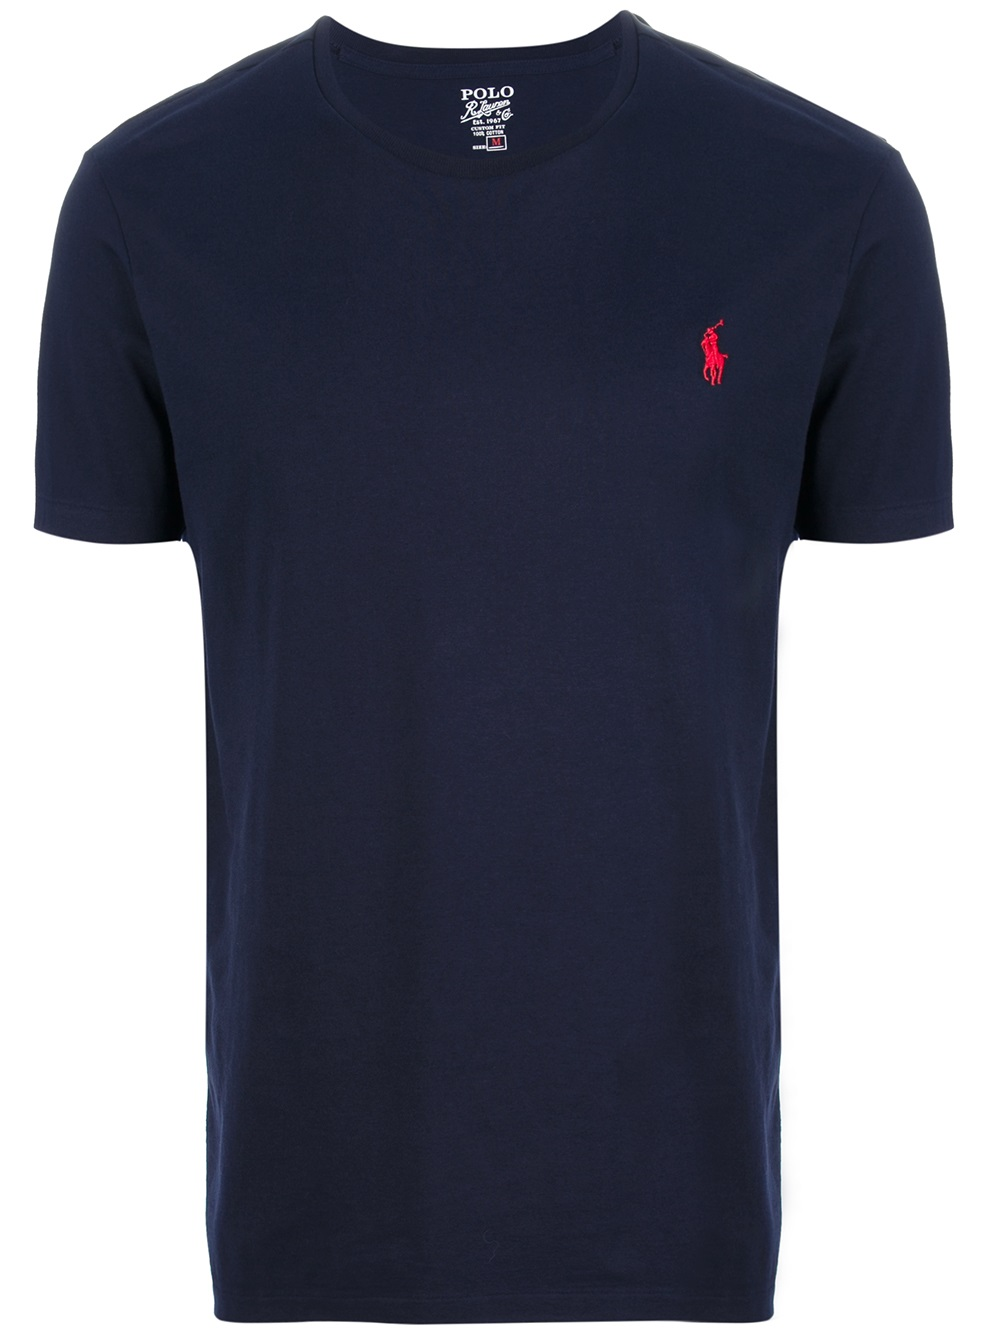 polo ralph lauren custom fit t shirt in blue for men lyst. Black Bedroom Furniture Sets. Home Design Ideas